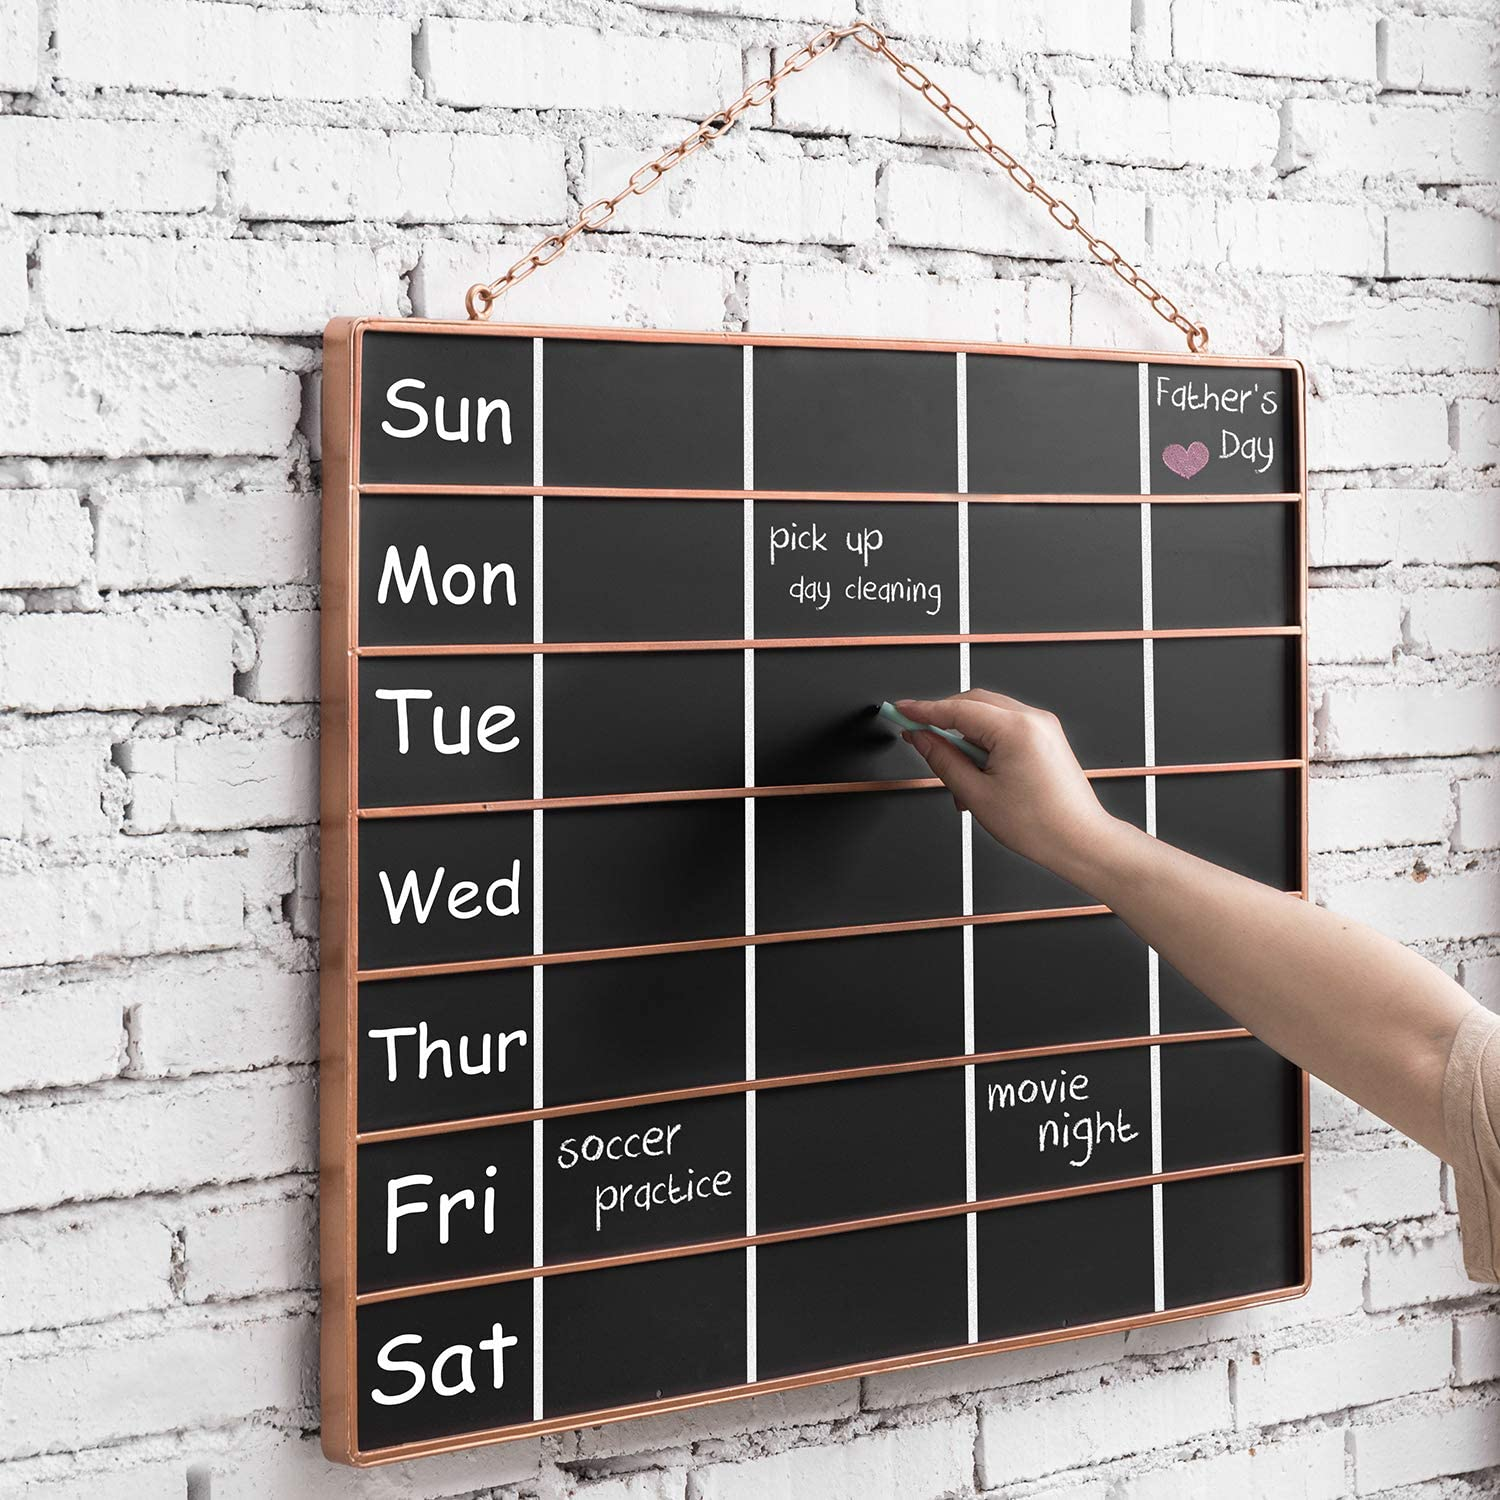 MyGift Wall Hanging Chalkboard Weekly Planner Calendar with Copper Tone Metal Frame